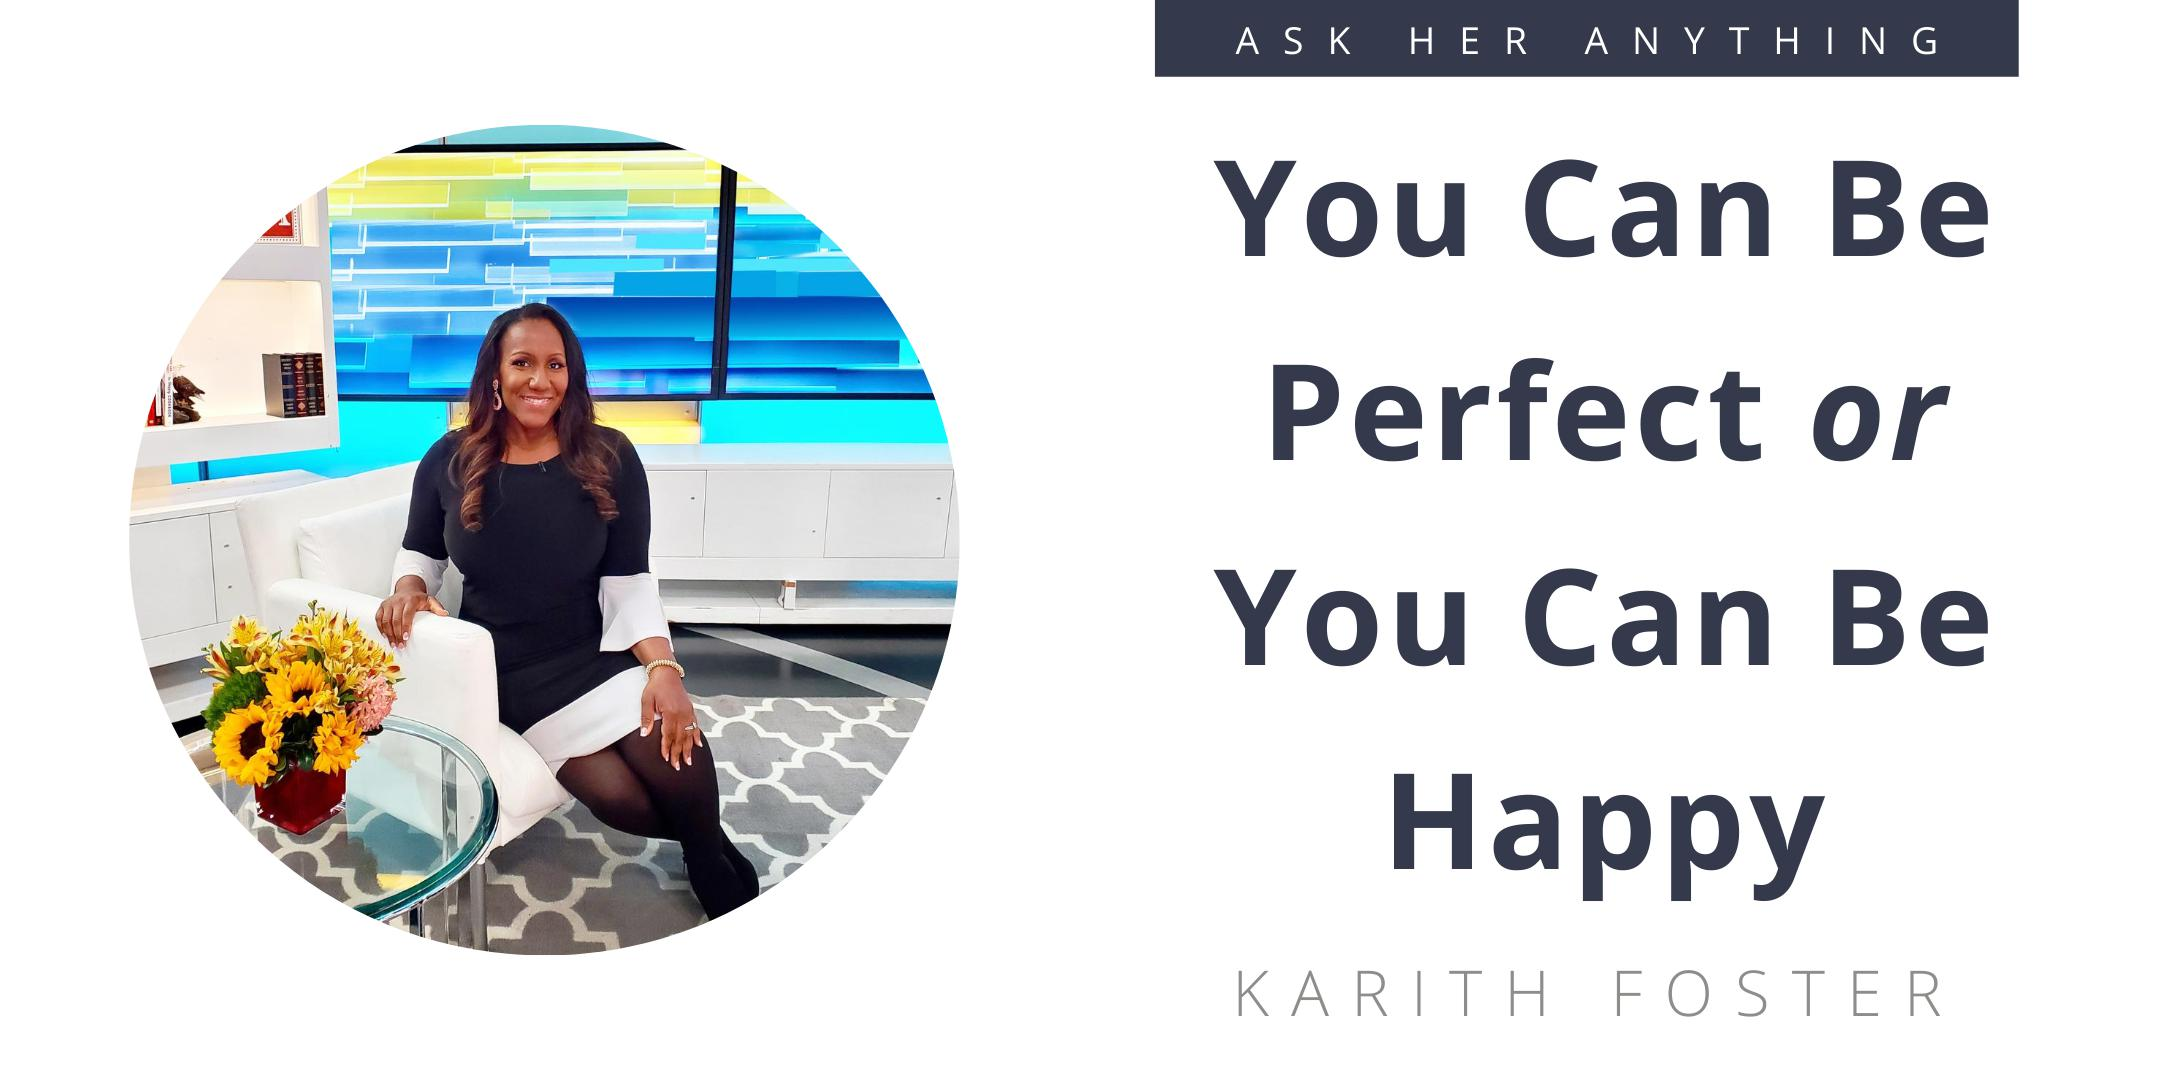 You Can Be Perfect or You Can Be Happy